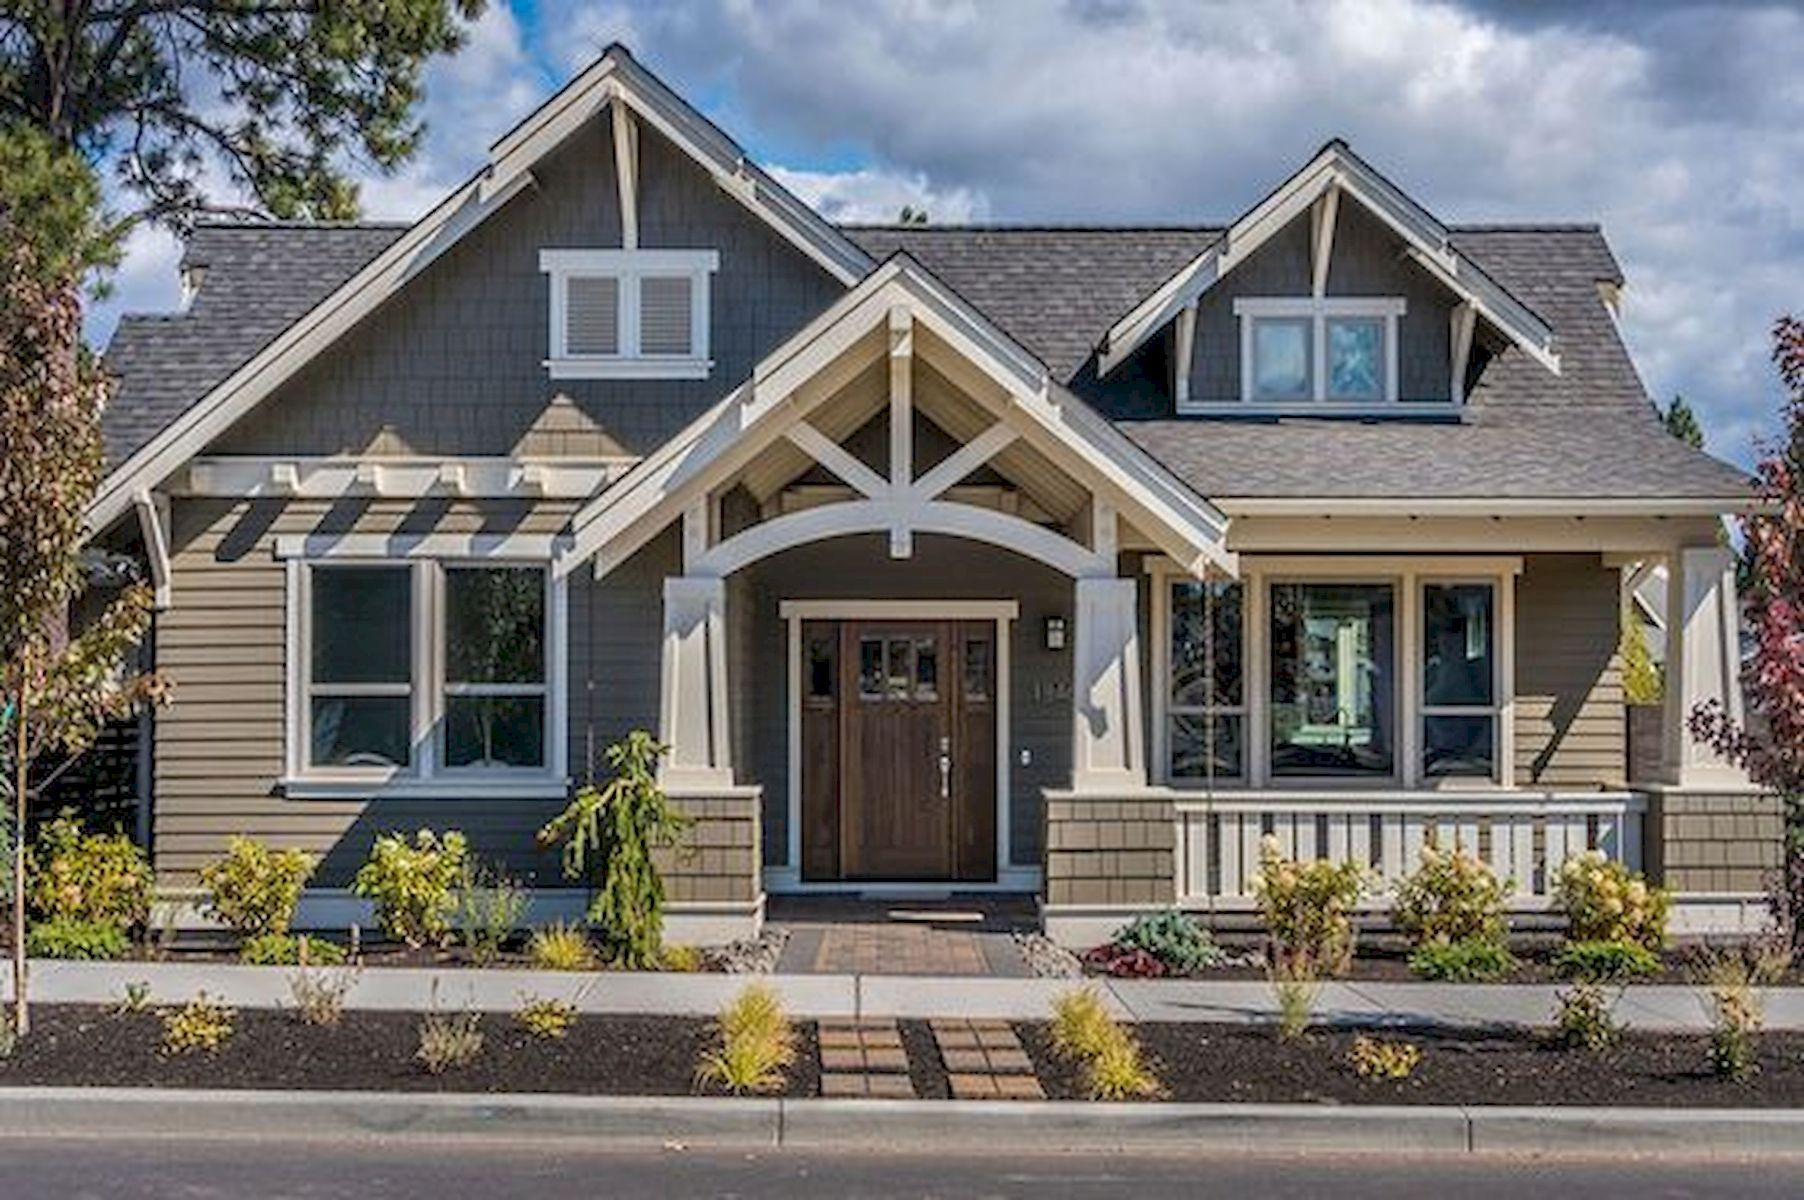 40 Amazing Craftsman Style Homes Design Ideas #craftsmanstylehomes